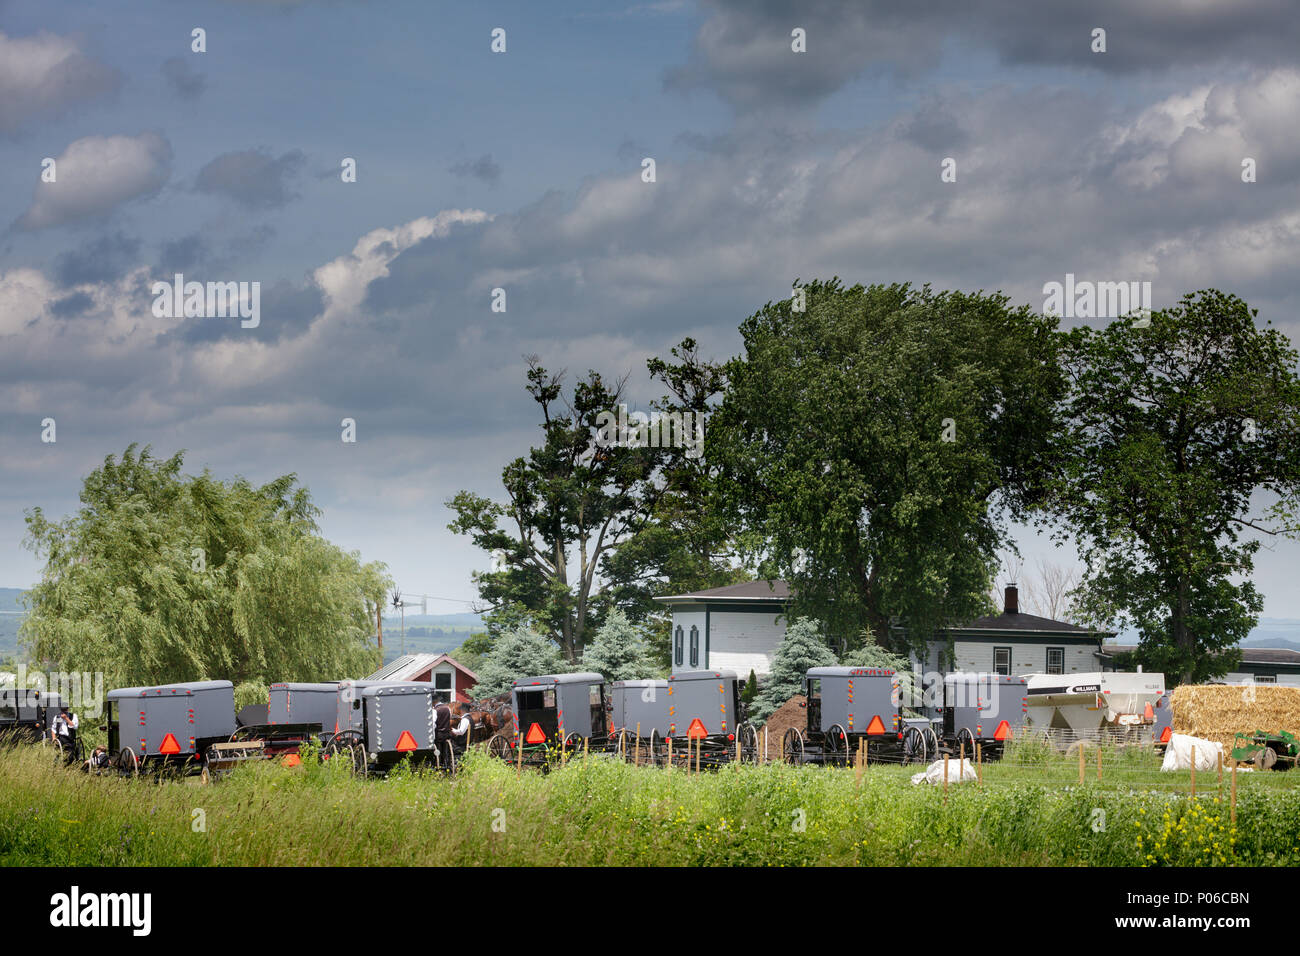 MOHAWK VALLEY, NY/USA - JUNE 18, 2017: Amish Community meets at a different member's house every Sunday. This one is in the Mohawk Valley town of Mind Stock Photo